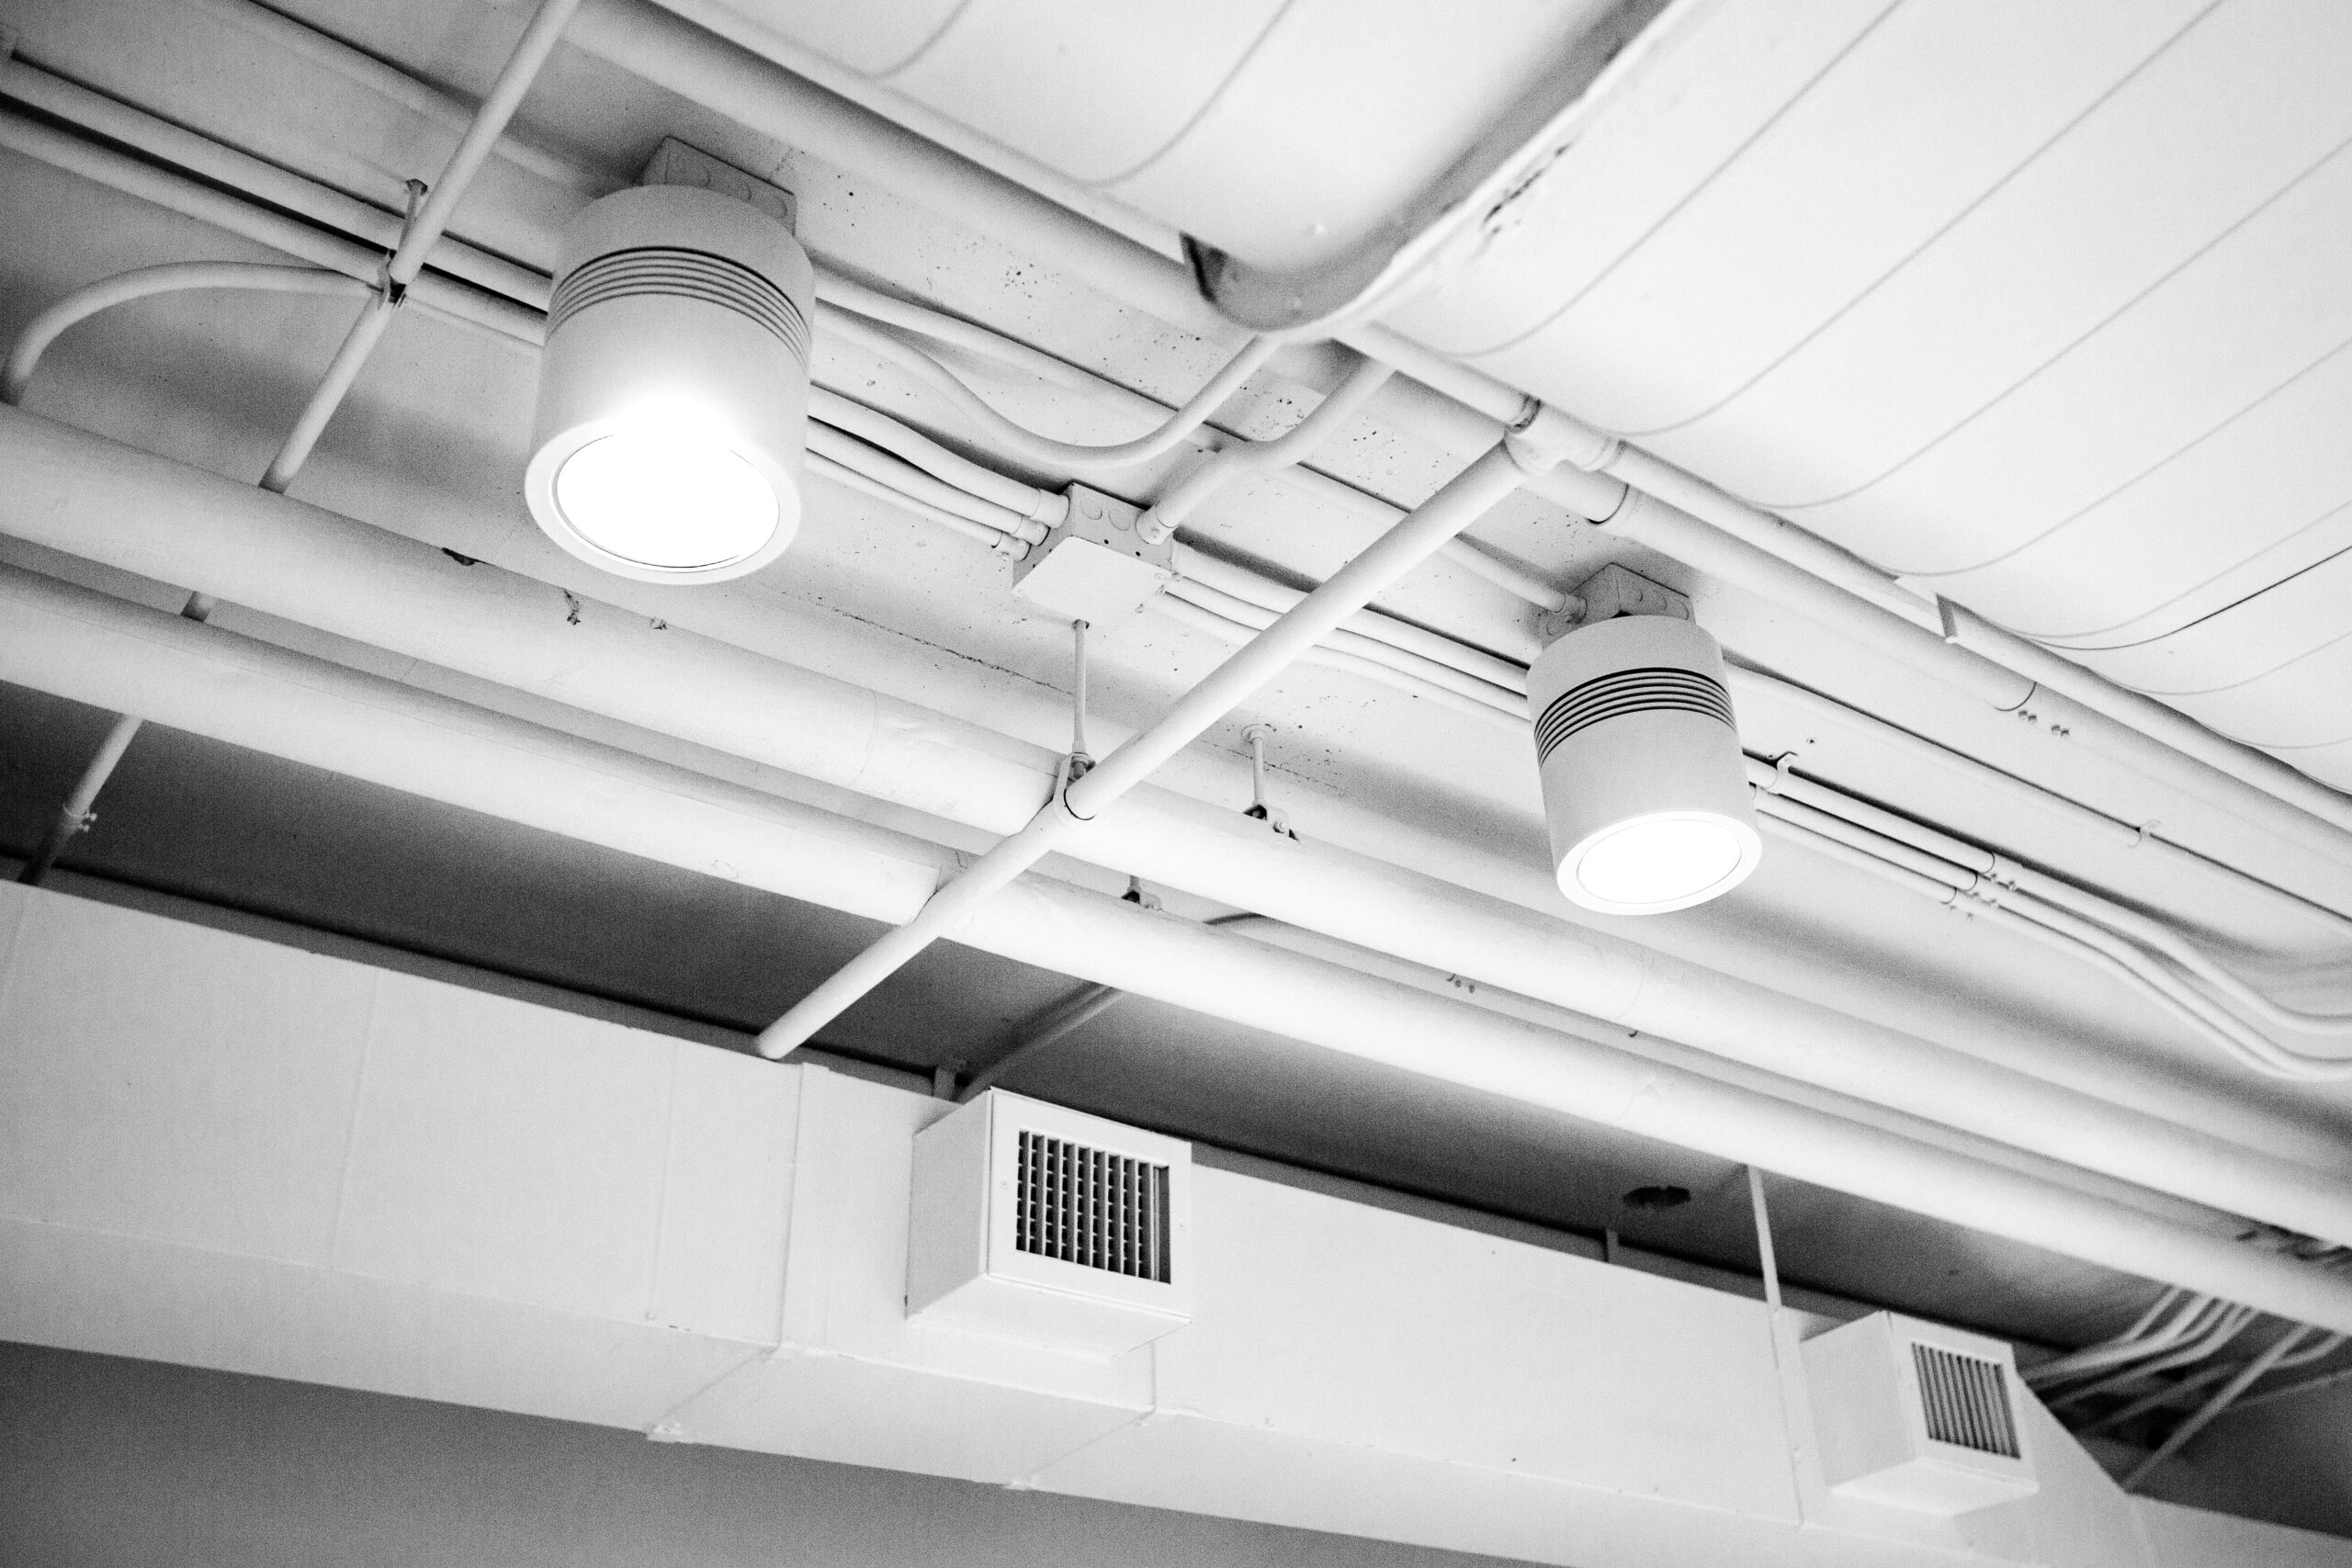 Breathe Cleaner: The Benefits of Air Duct Cleaning